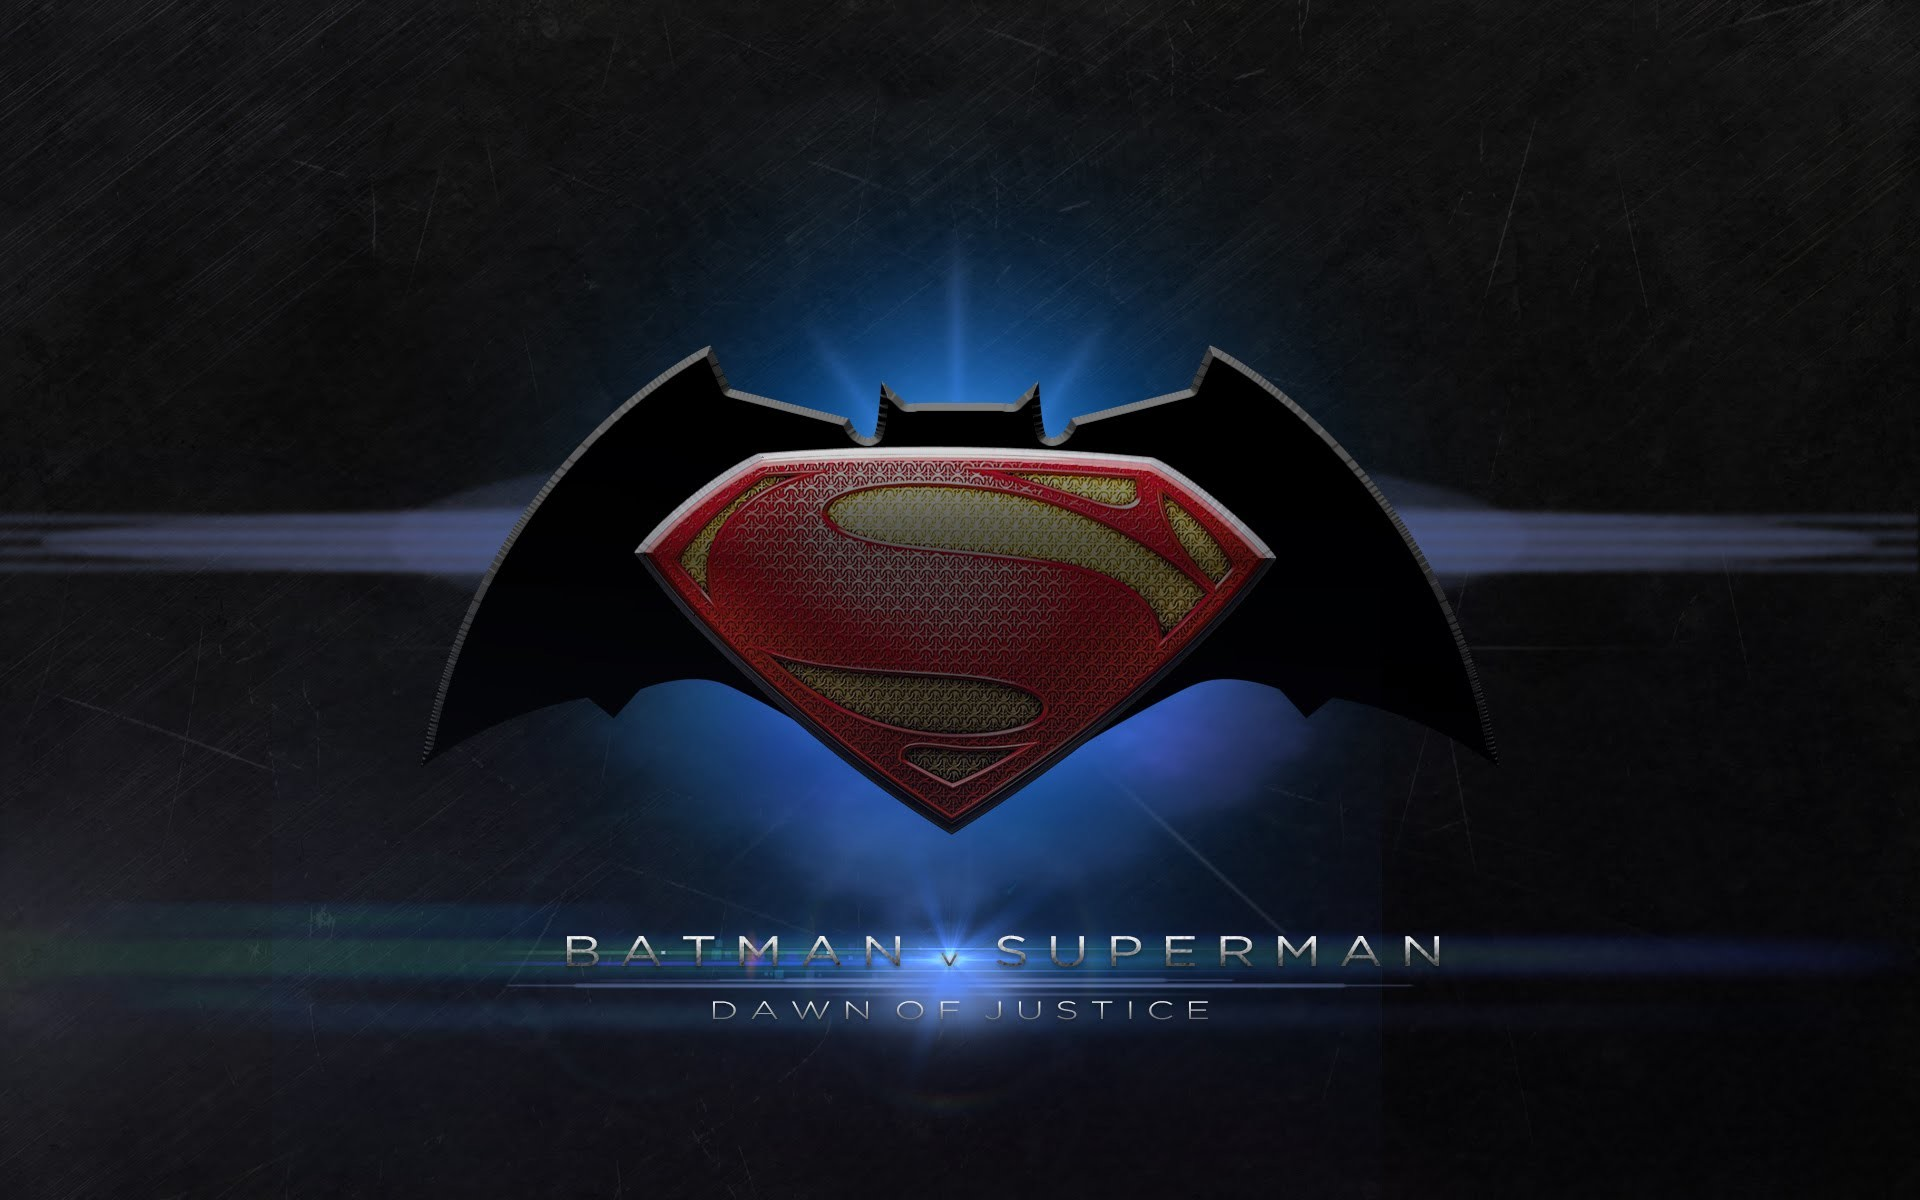 1920x1200 Batman vs Superman Logo